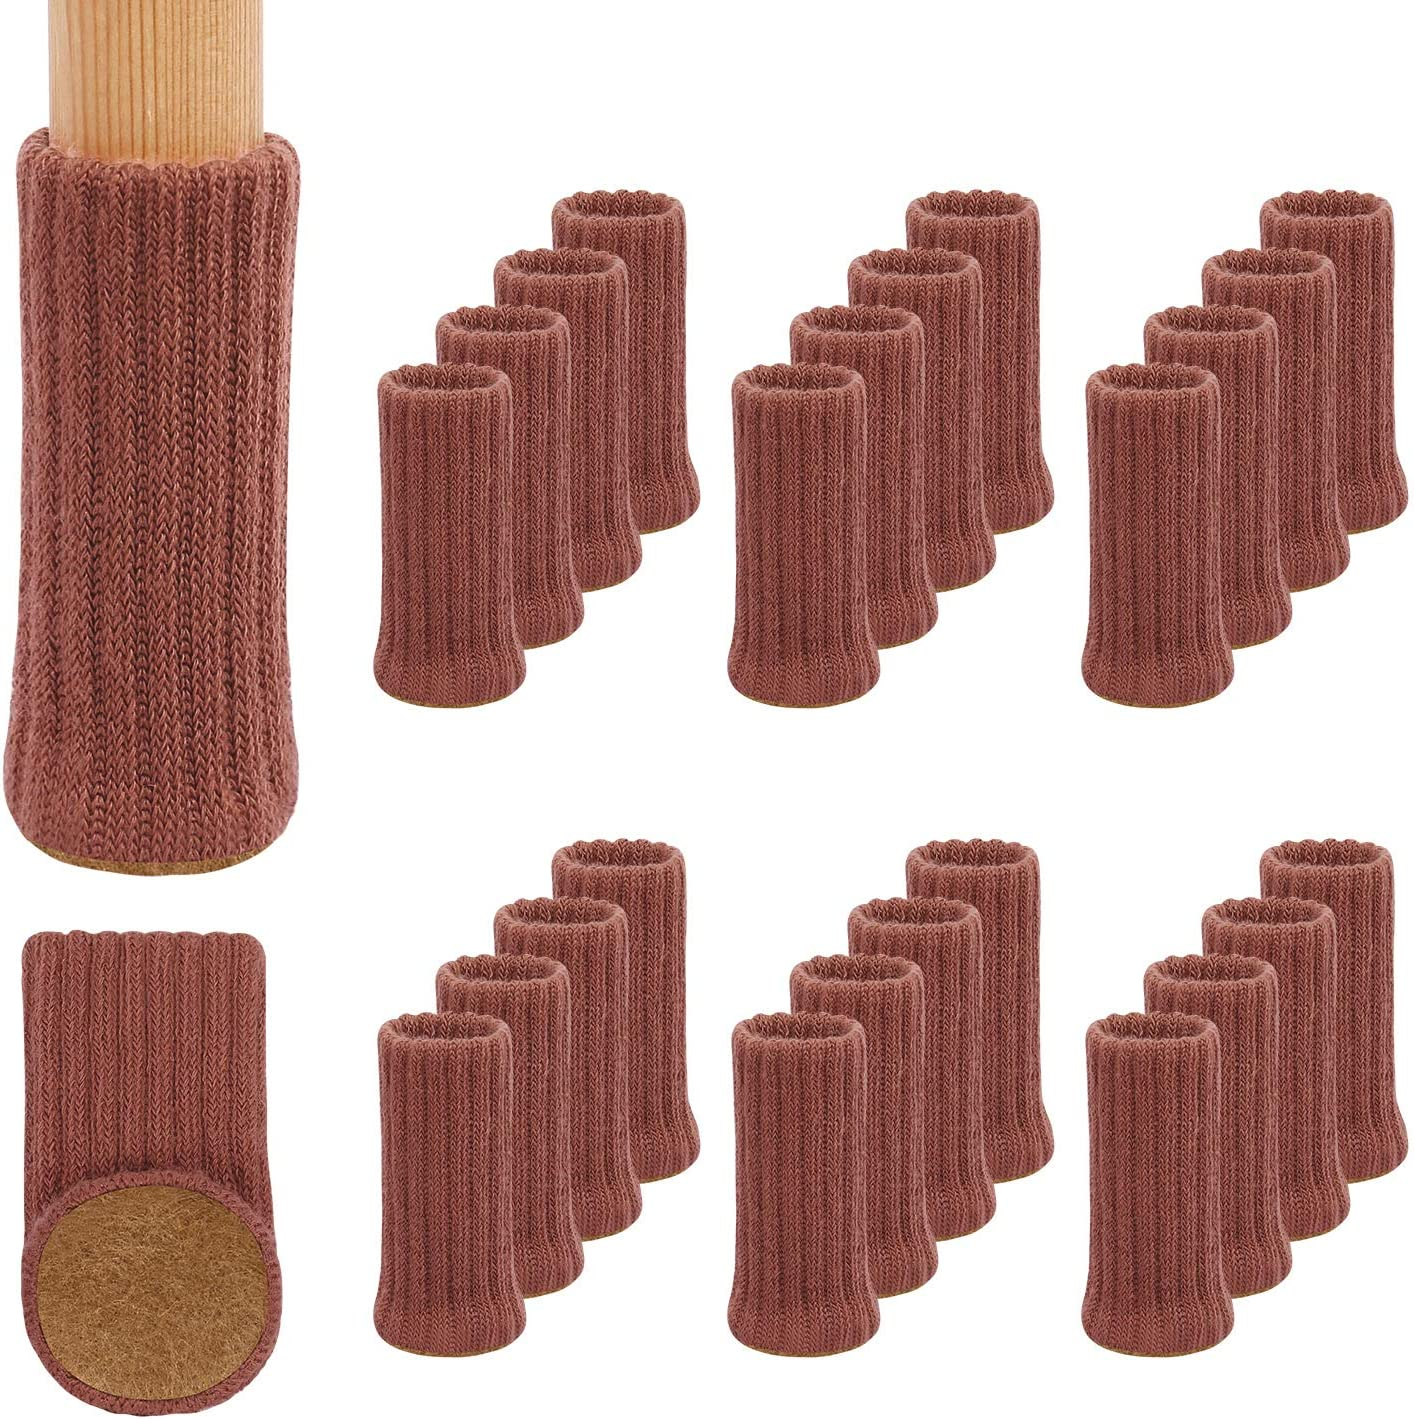 24Pack Furniture Leg Socks, High Elastic Knitted Chair Leg Floor Protectors, Fits All Shapes of Chair Legs with Diameter from 3/4 inch to 1-1/2 inch, Brick Red